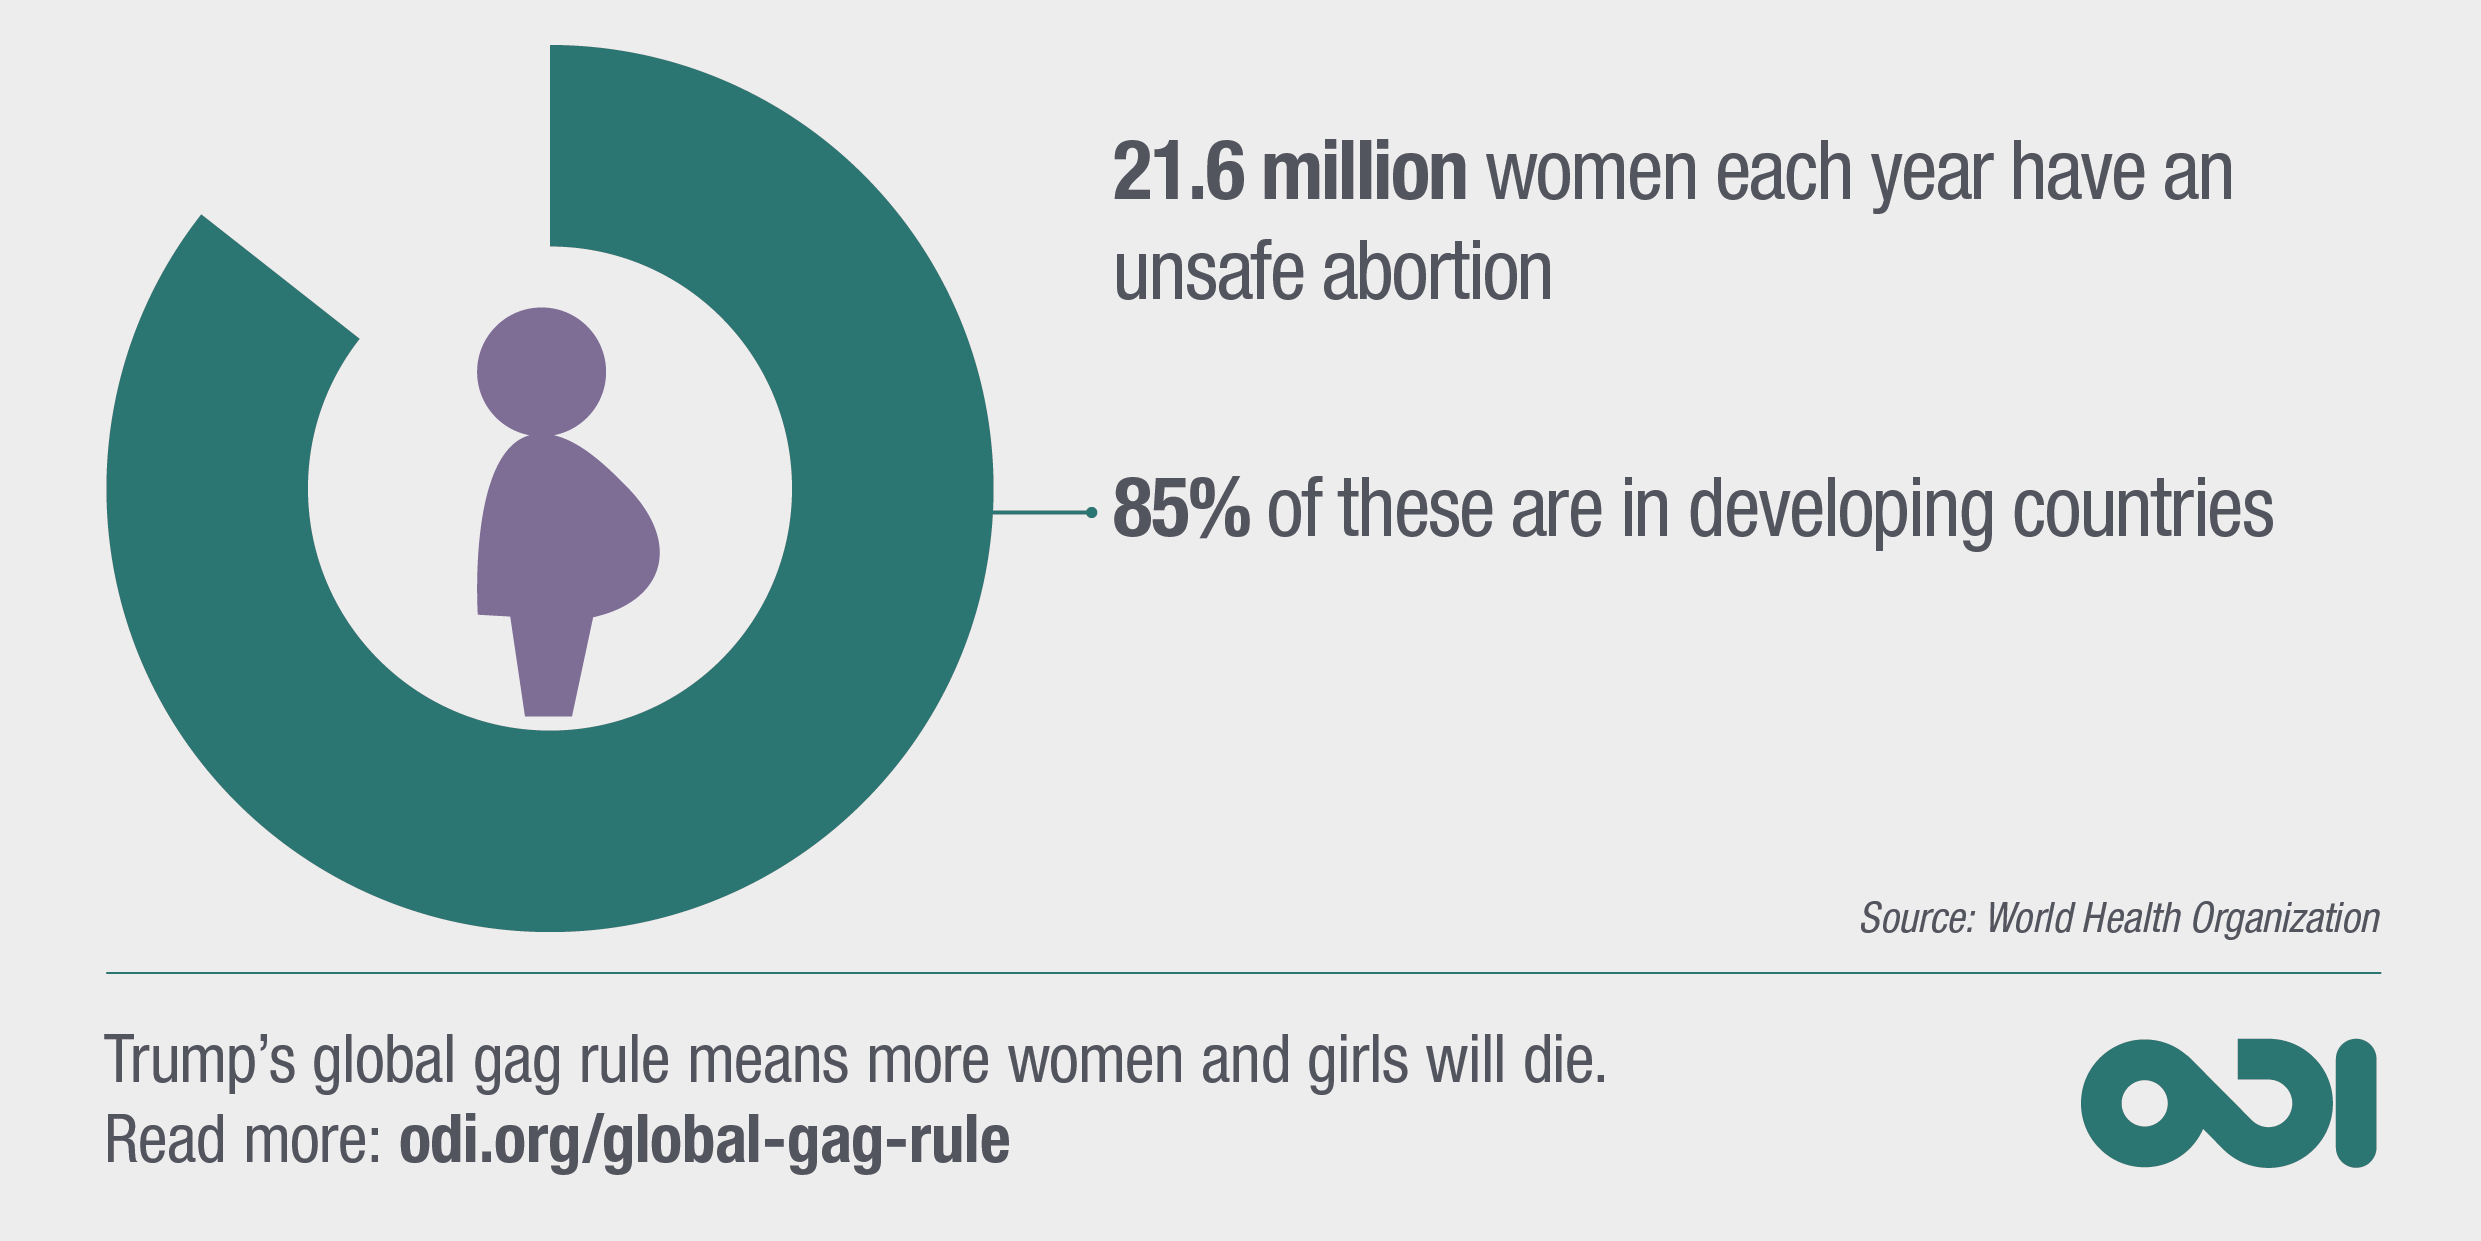 Infographic: Trump's global gag rule means more women and girls will die